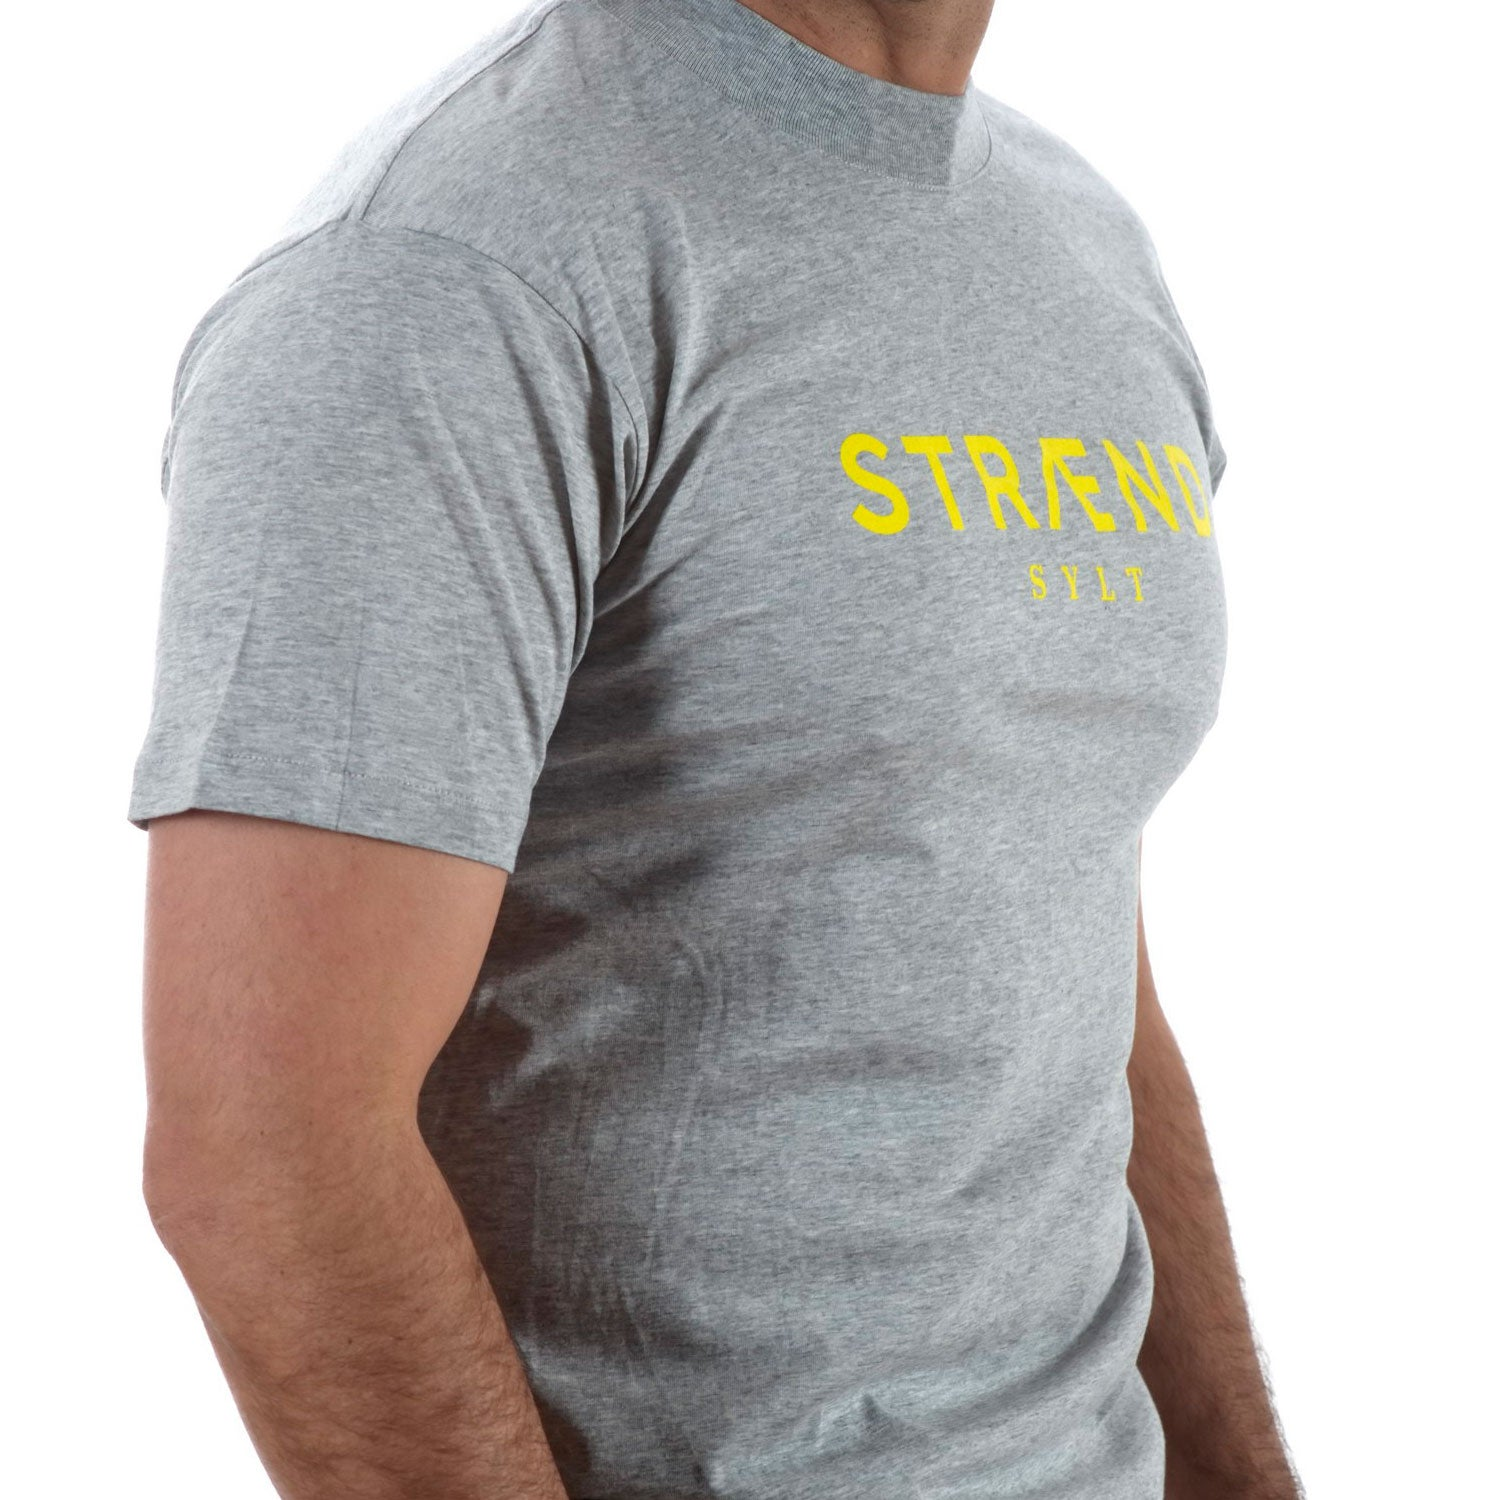 Herren T-Shirt STRÆND Grau grey links - Straend Shop Hörnum Sylt